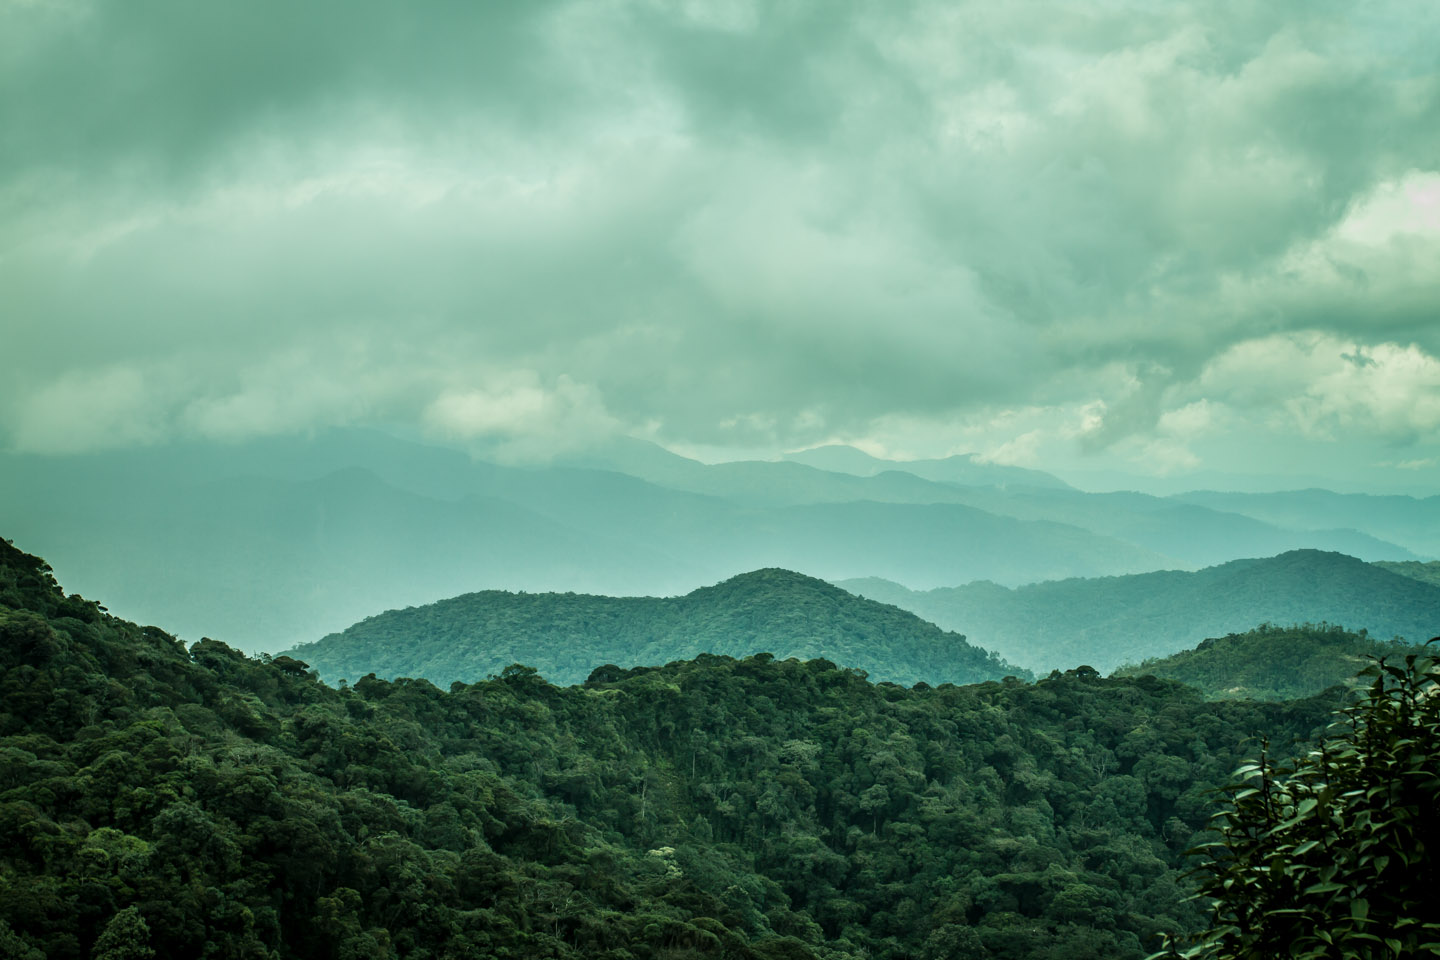 Look and view over the Mossy Forest Mount Gunung Batu Brinchang Malaysia